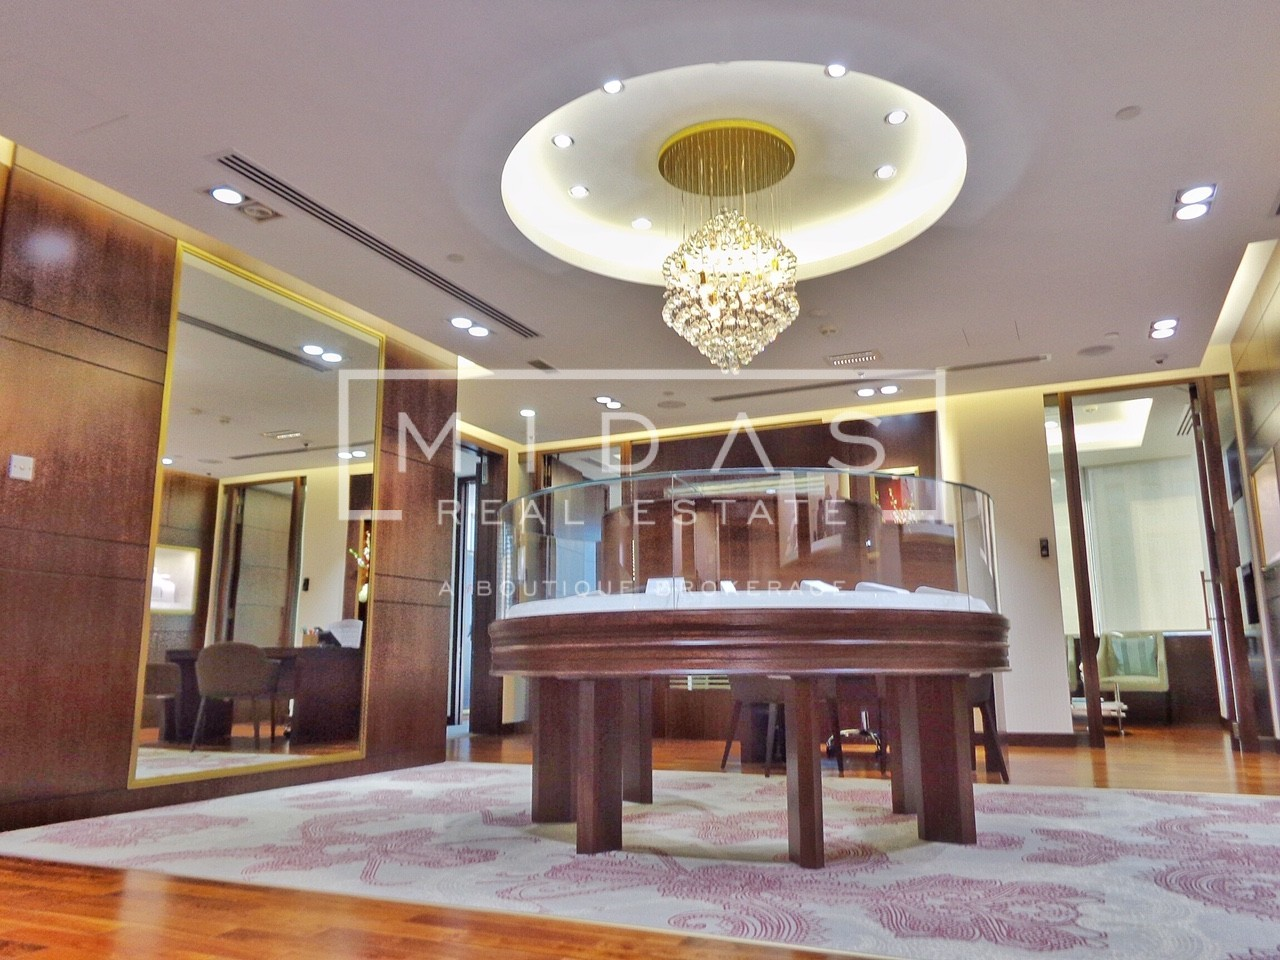 Must See! Fully Fitted Jewelry Showroom w/ Lake View